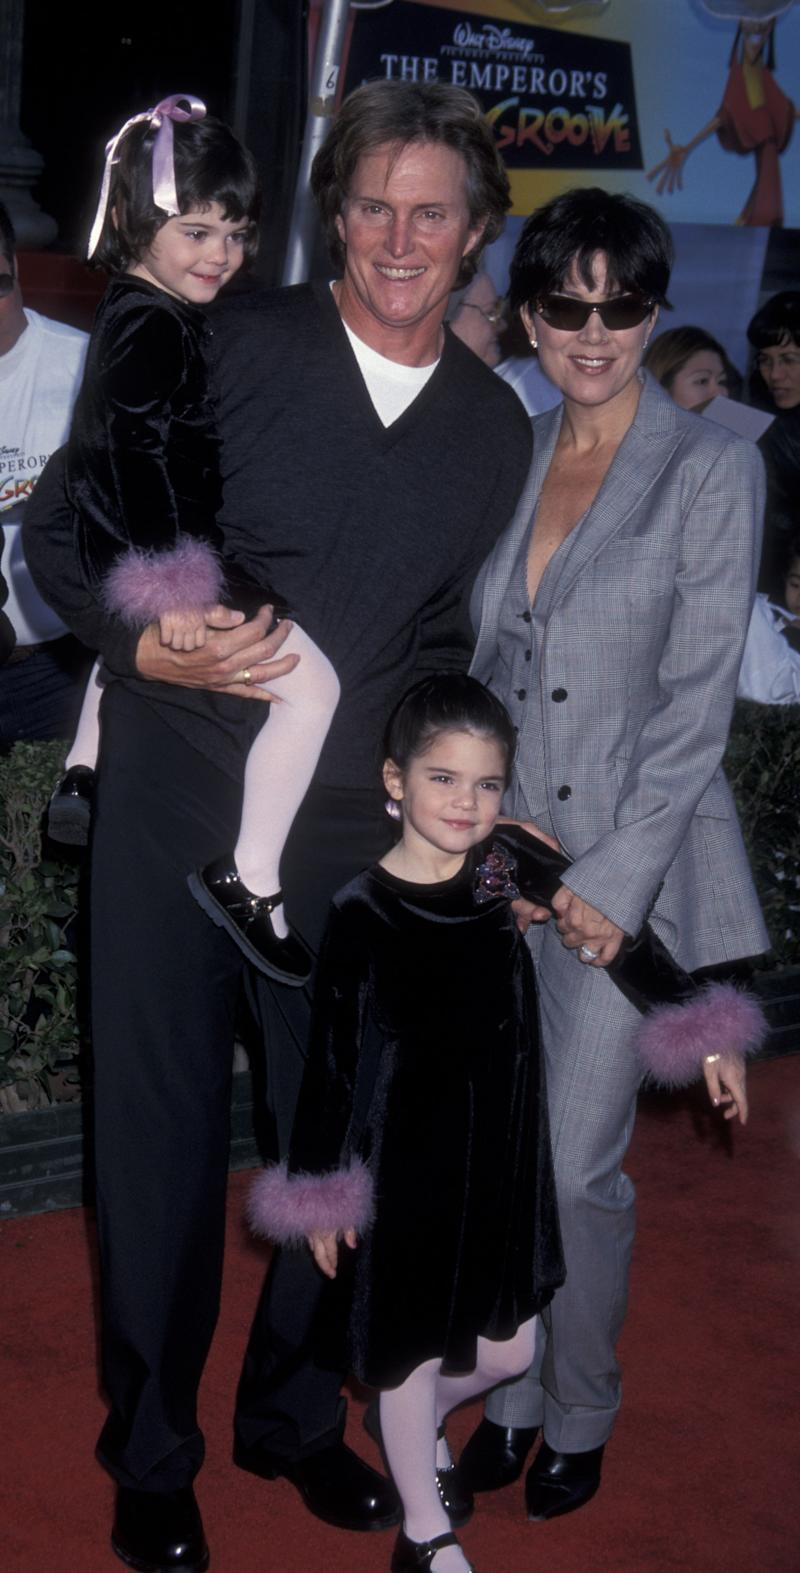 Kylie Jenner, Caitlyn Jenner (formerly Bruce Jenner), Kendall Jenner, and Kris Jenner at the world premiere of The Emperor's New Groove in Hollywood, California, December 2000.